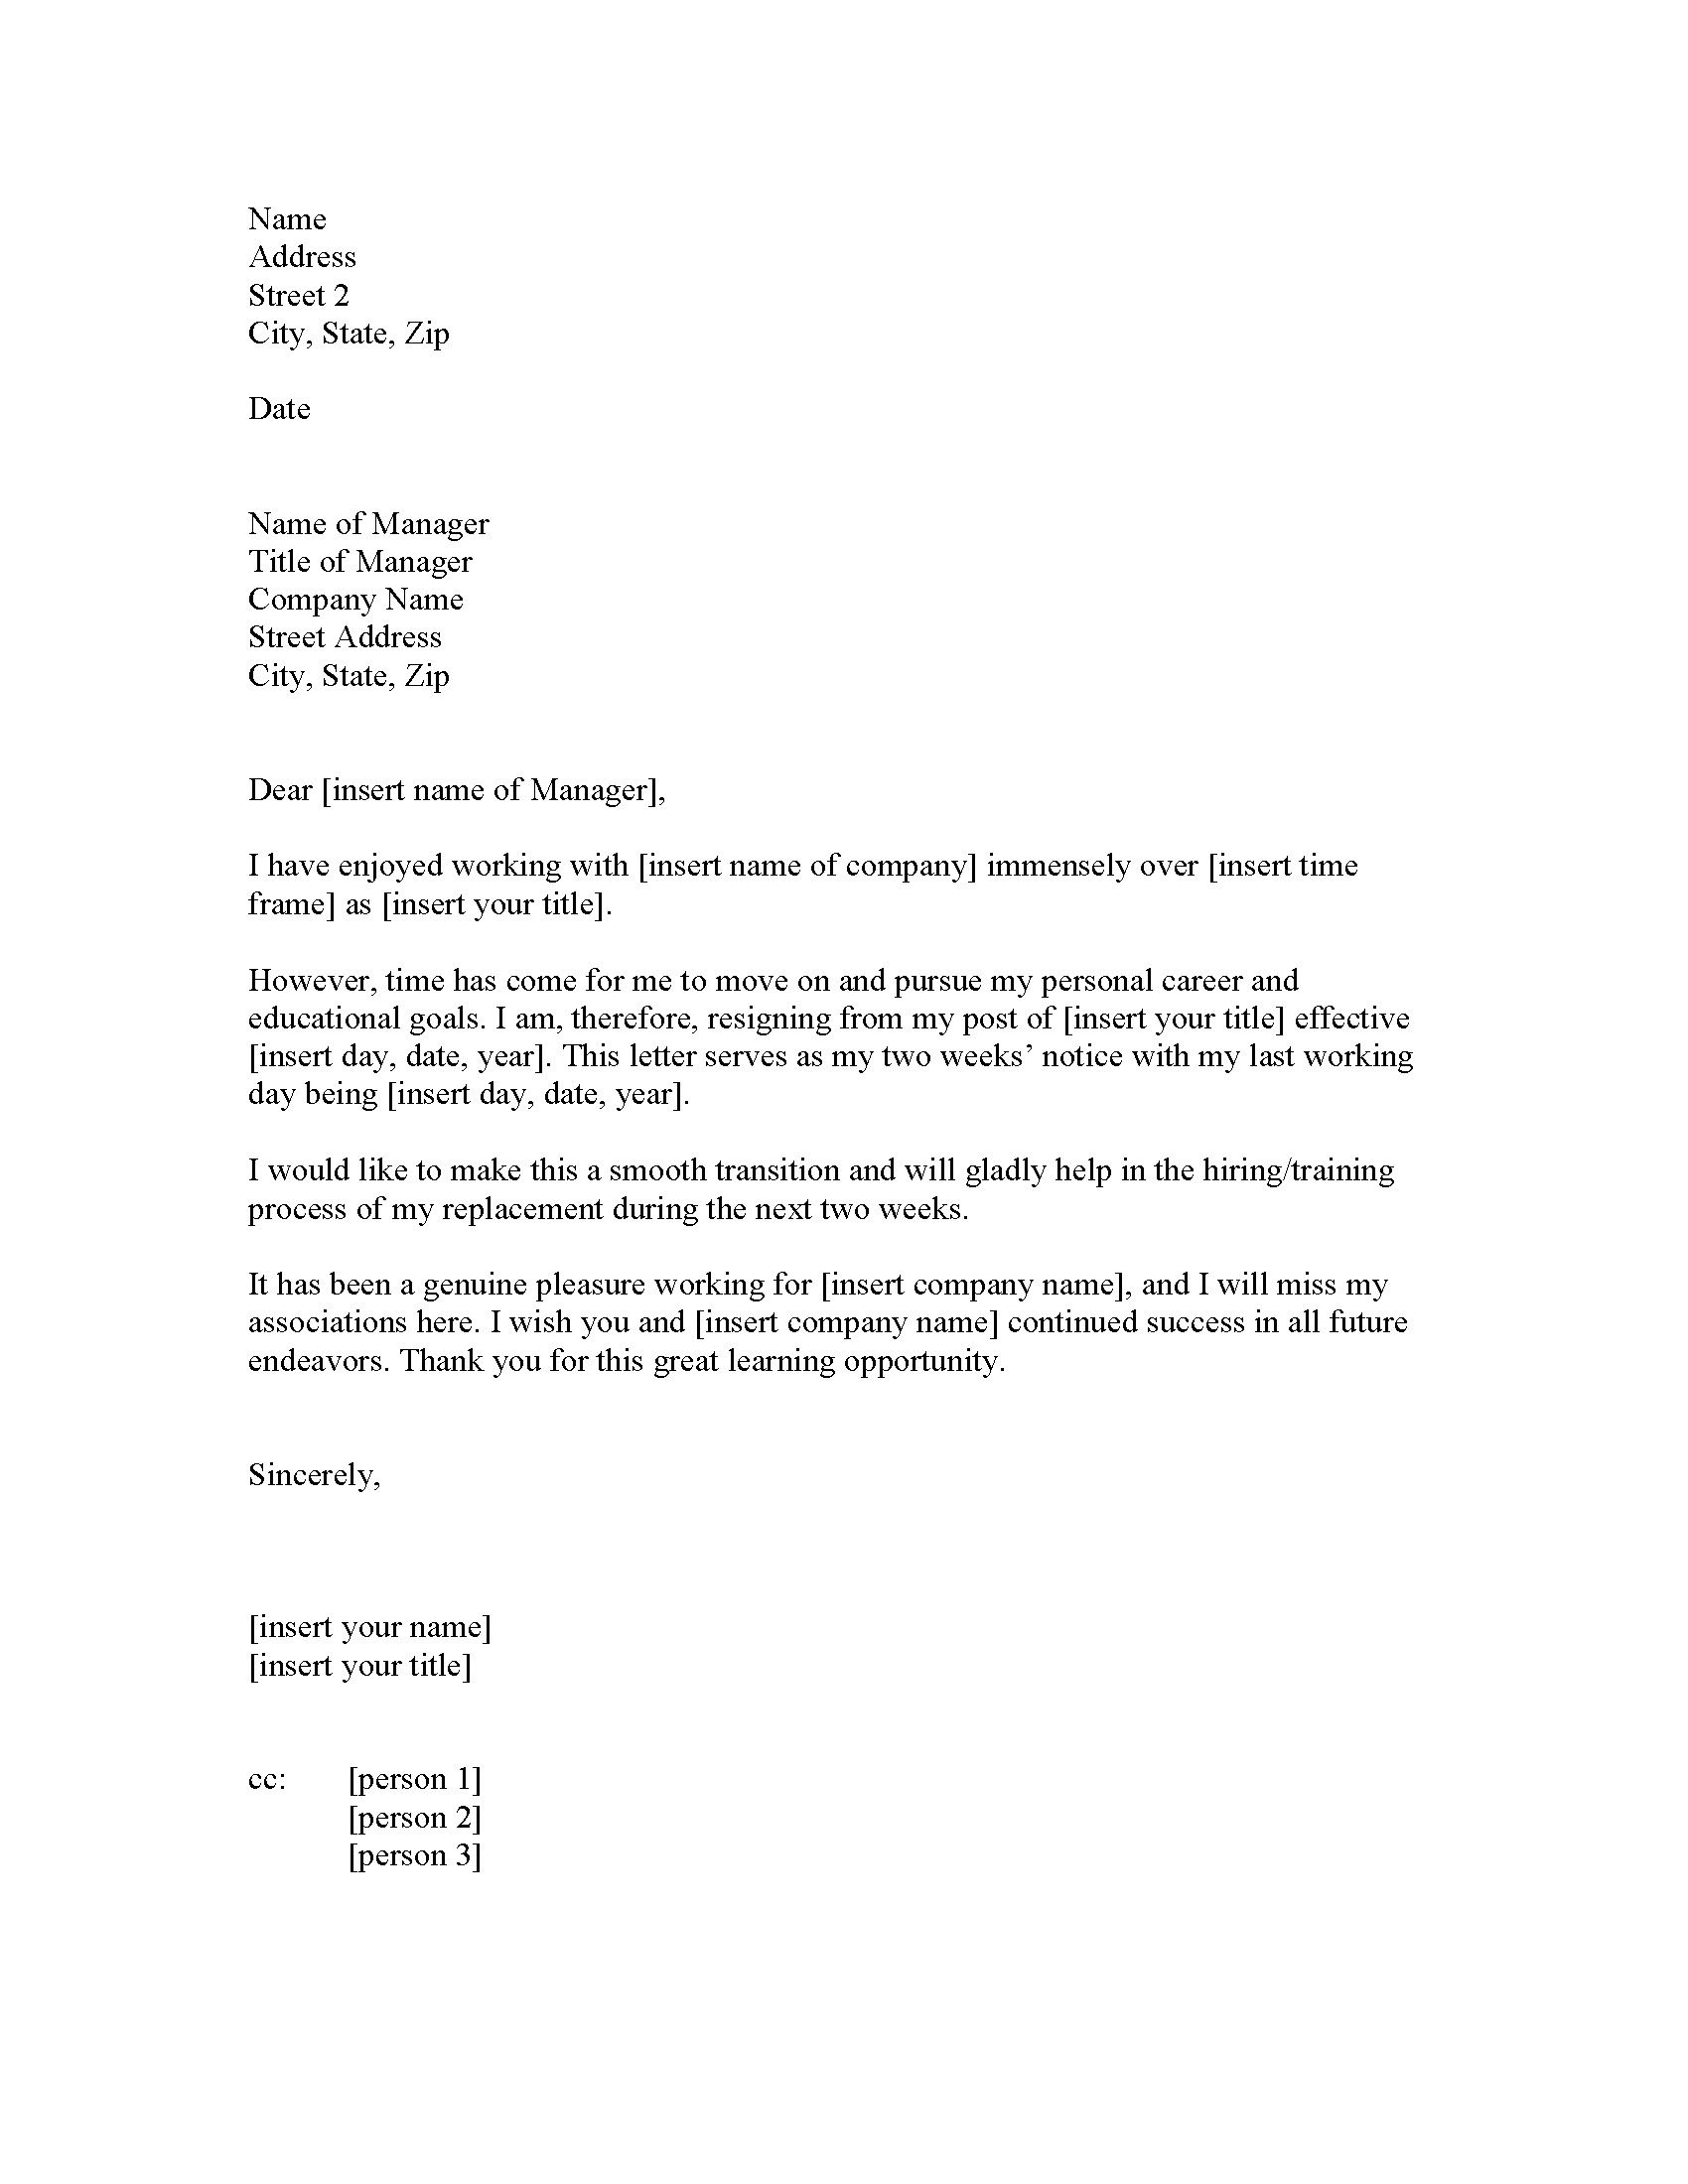 two week resignation letter samples resignation letter2 resignation letter